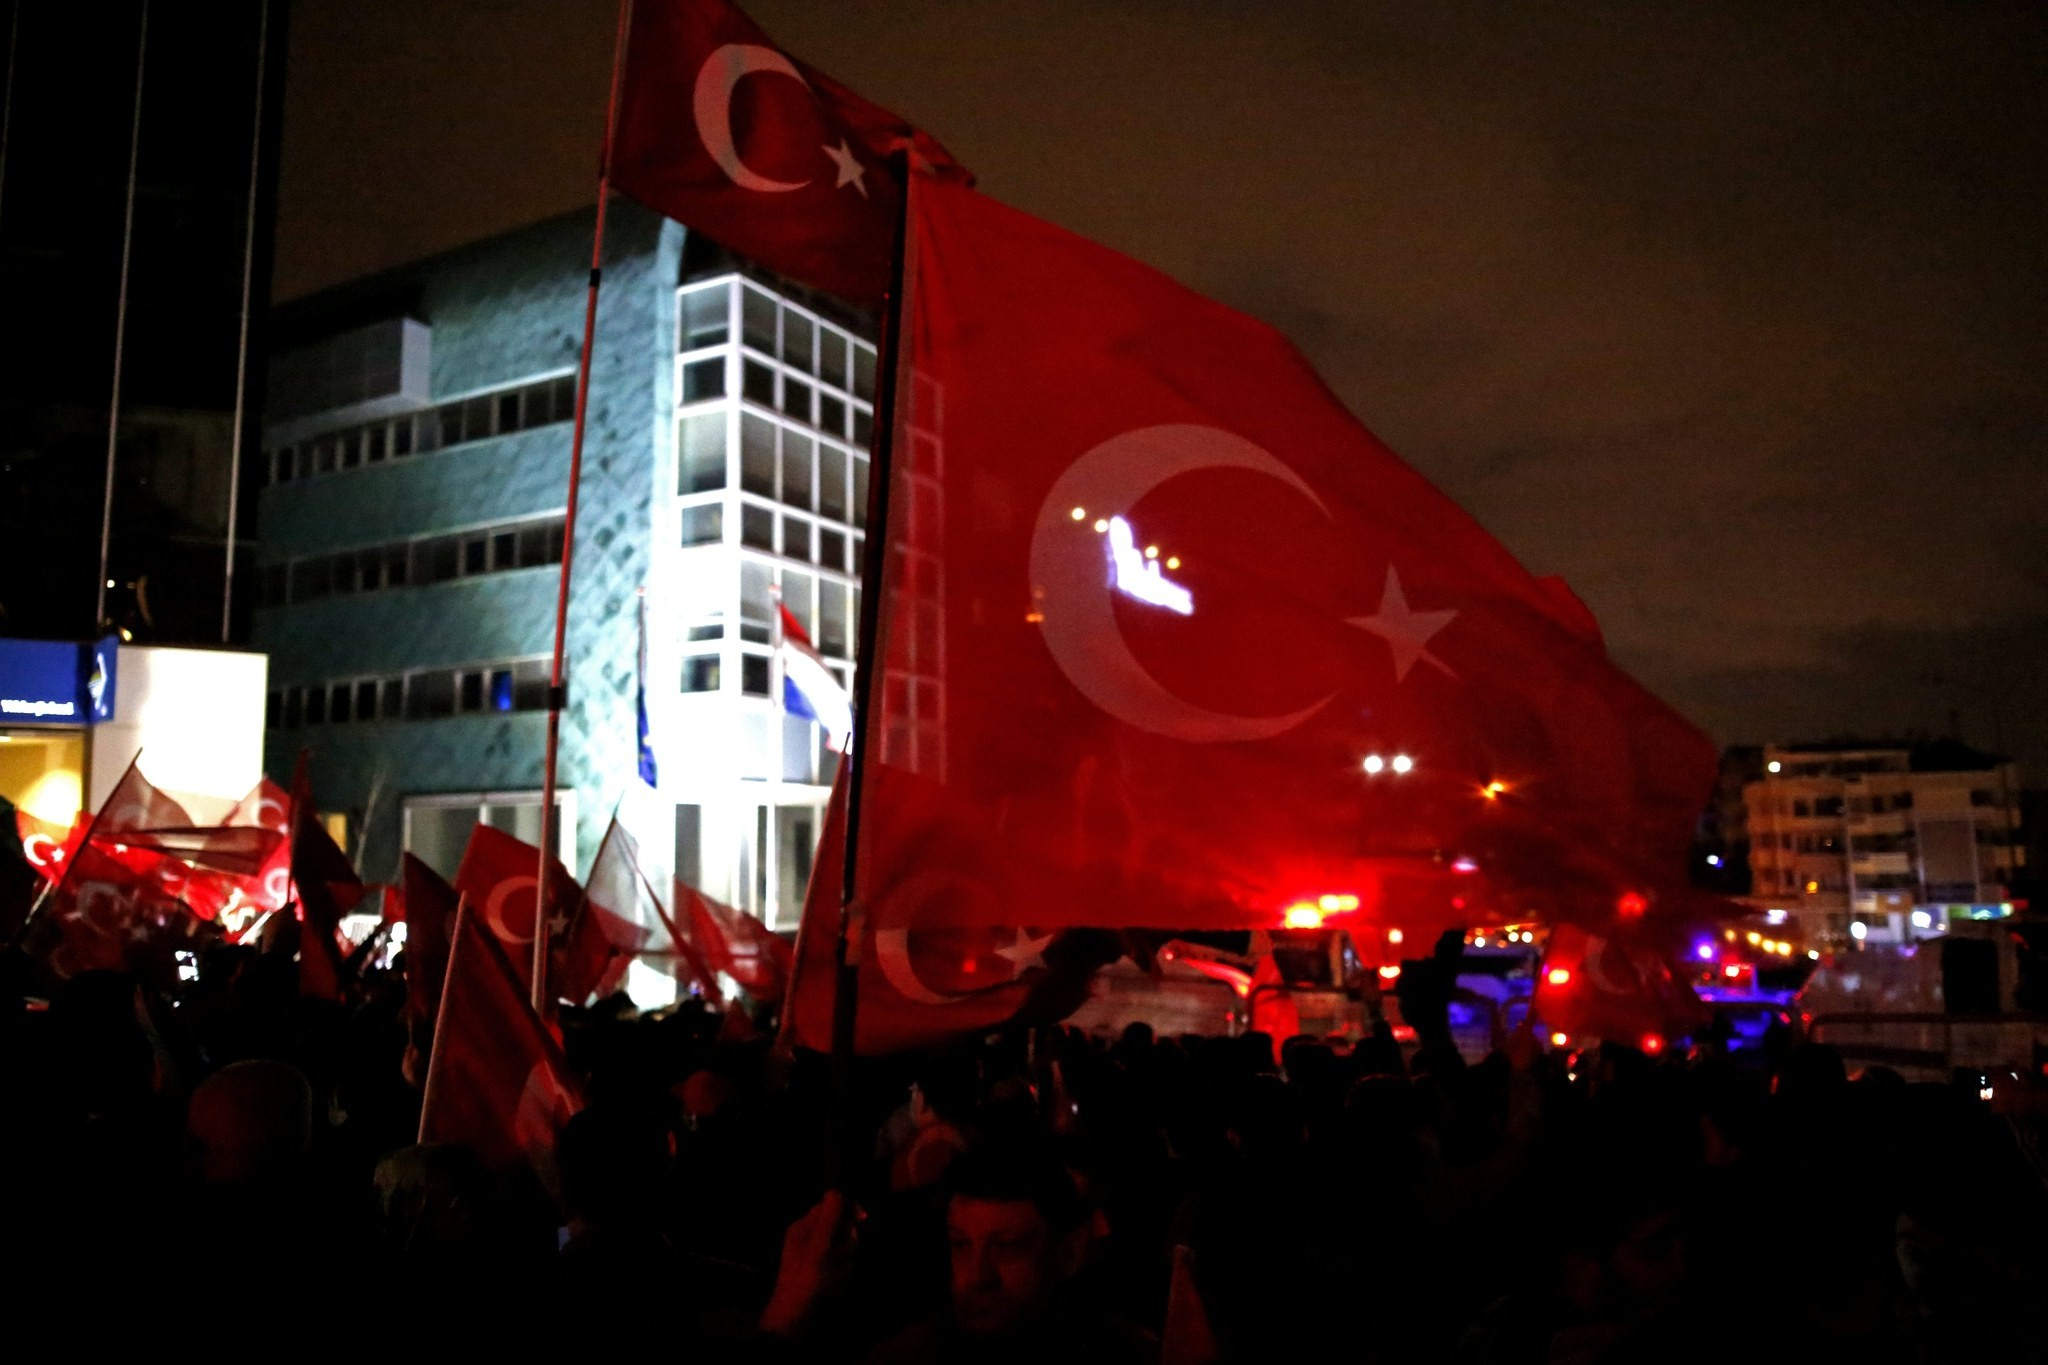 People shouting slogans in front of the Netherlands Embassy in Ankara against the Dutch government's treatment of Turkish Family and Social Policy Minister Fatma Betu00fcl Sayan Kaya, March 12.